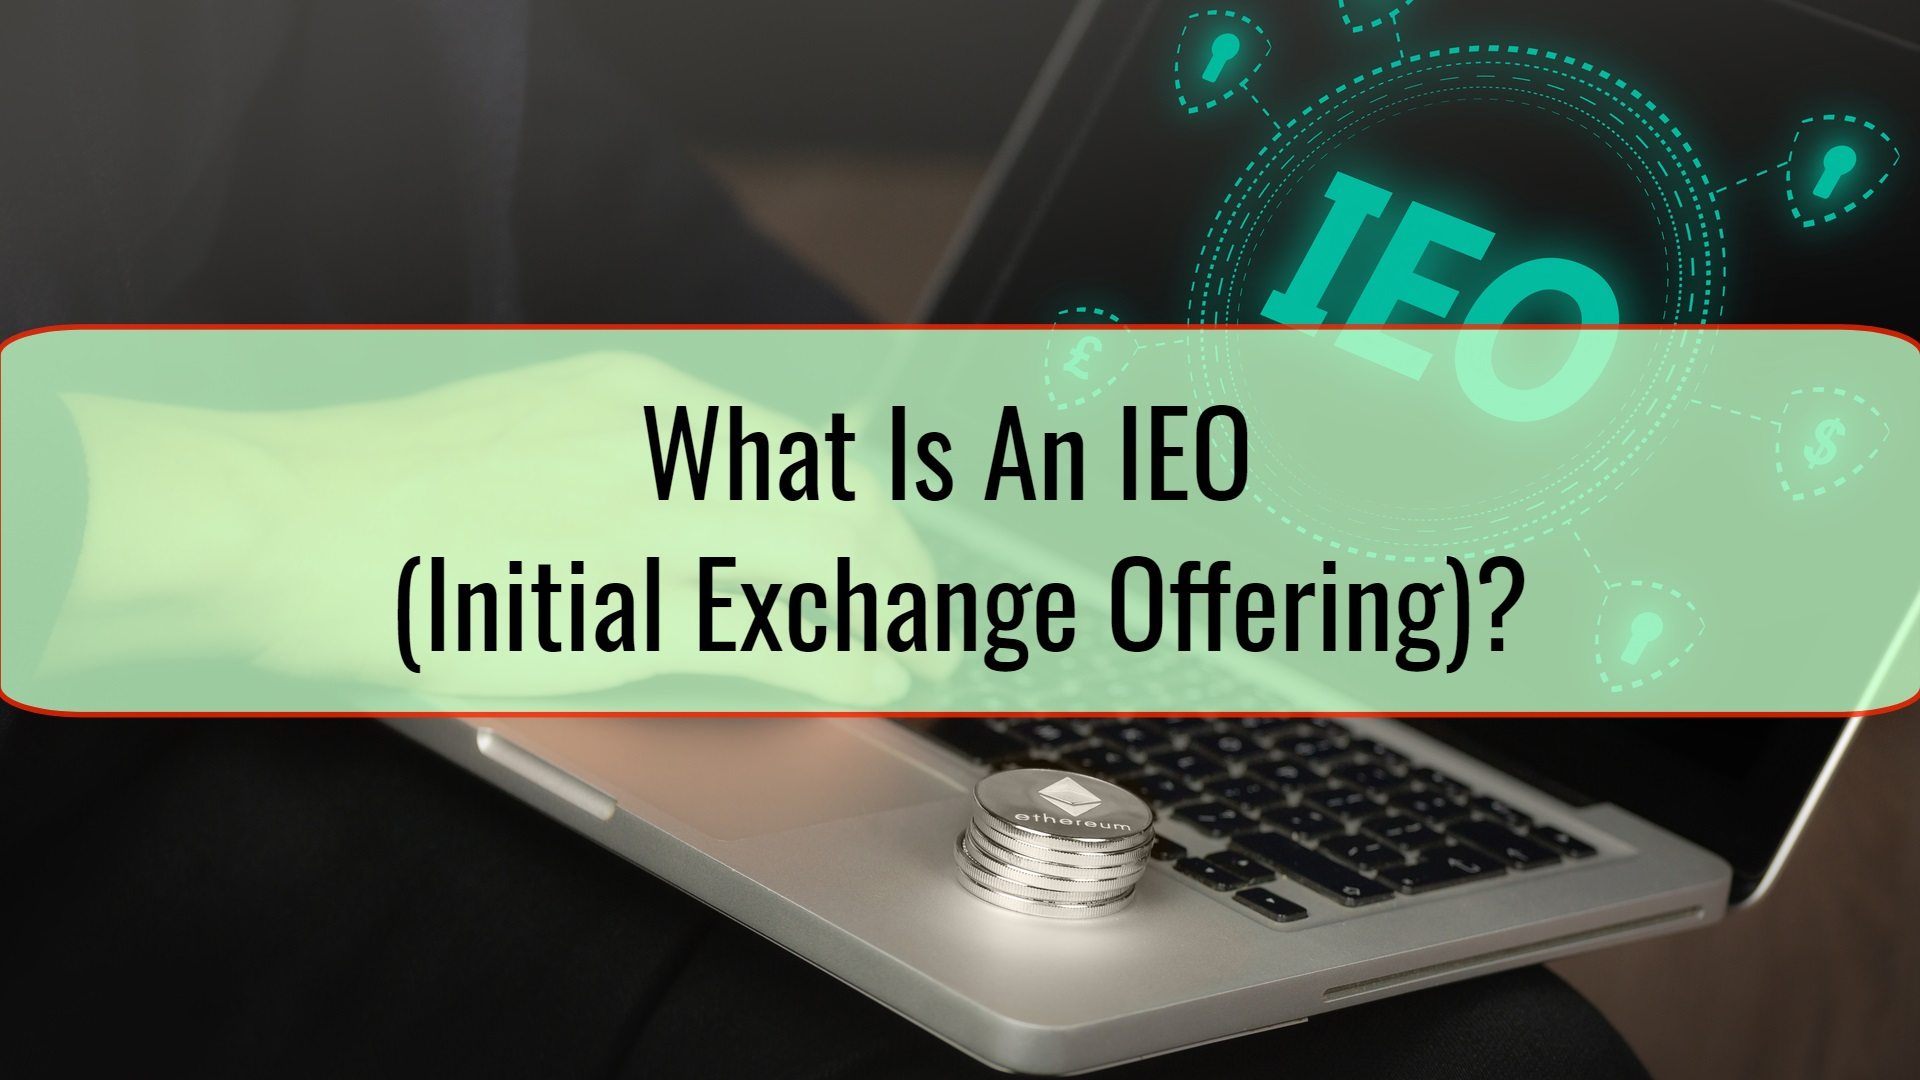 What Is An IEO (Initial Exchange Offering)